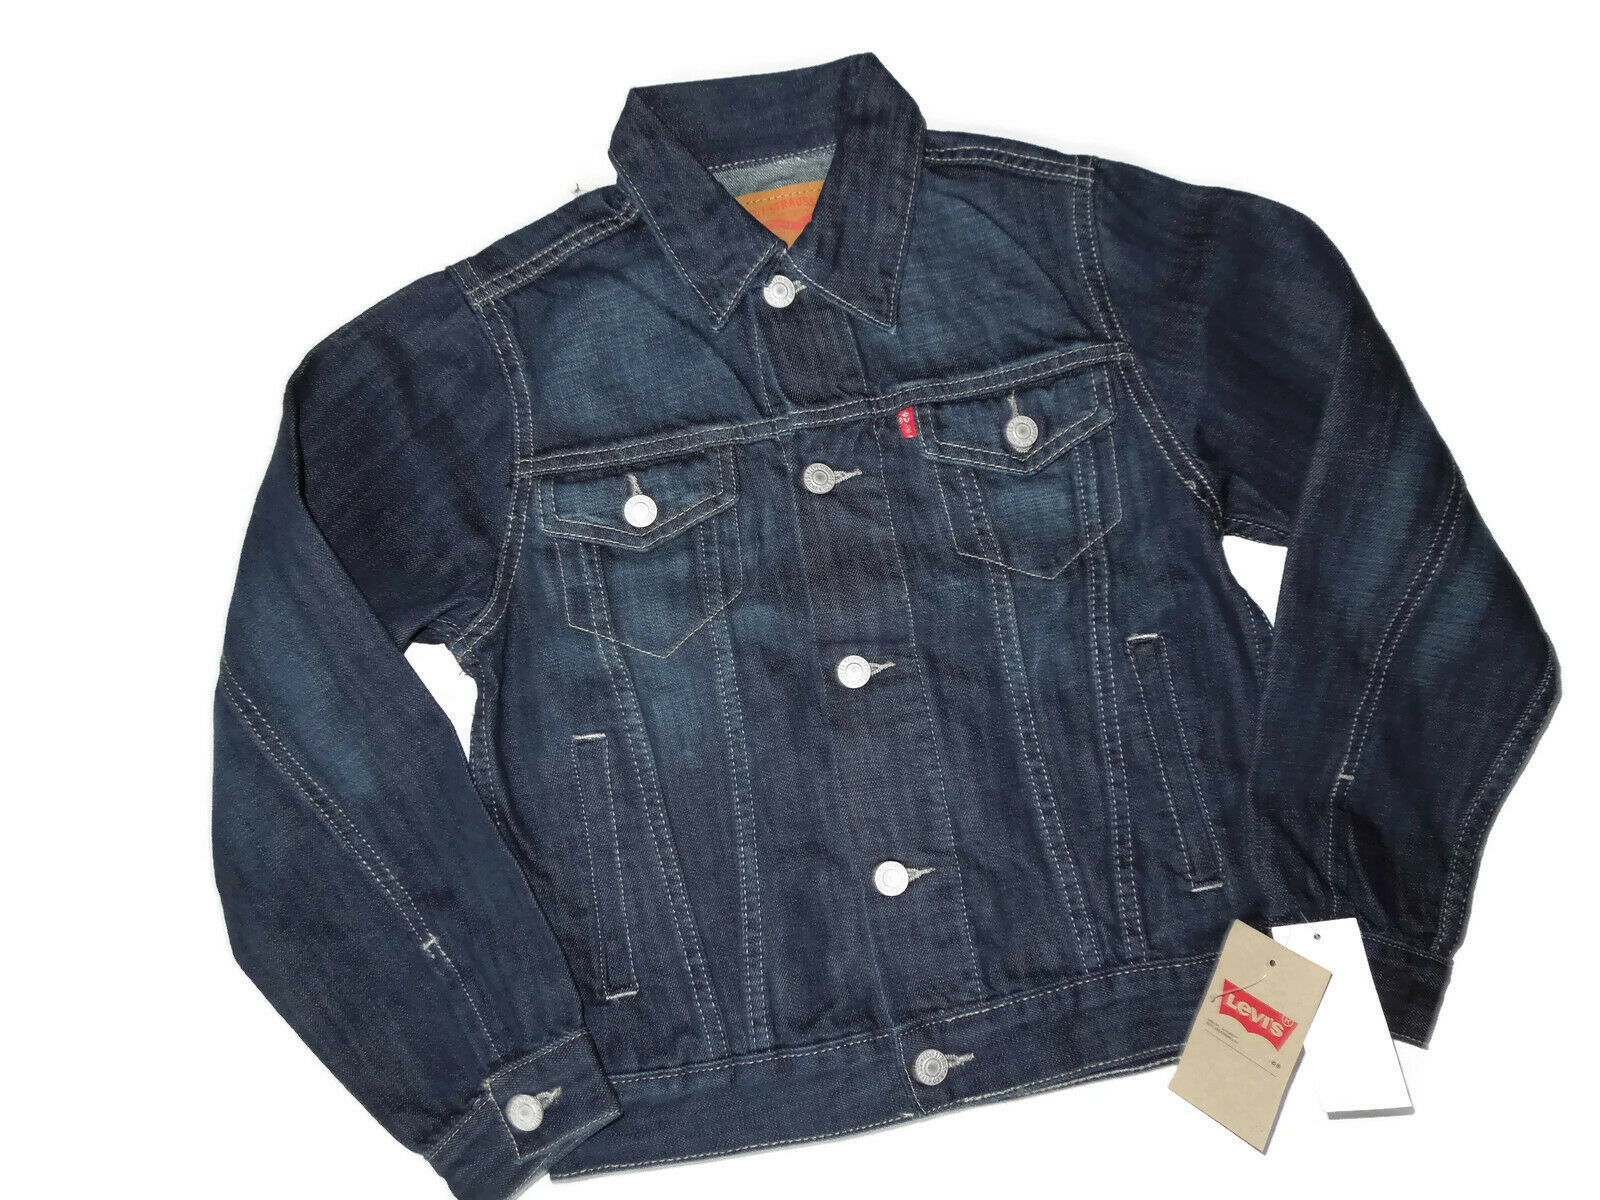 Primary image for Levi's Levi Big Boys Denim Trucker Jacket Dark Medium M 10 - 12 Years